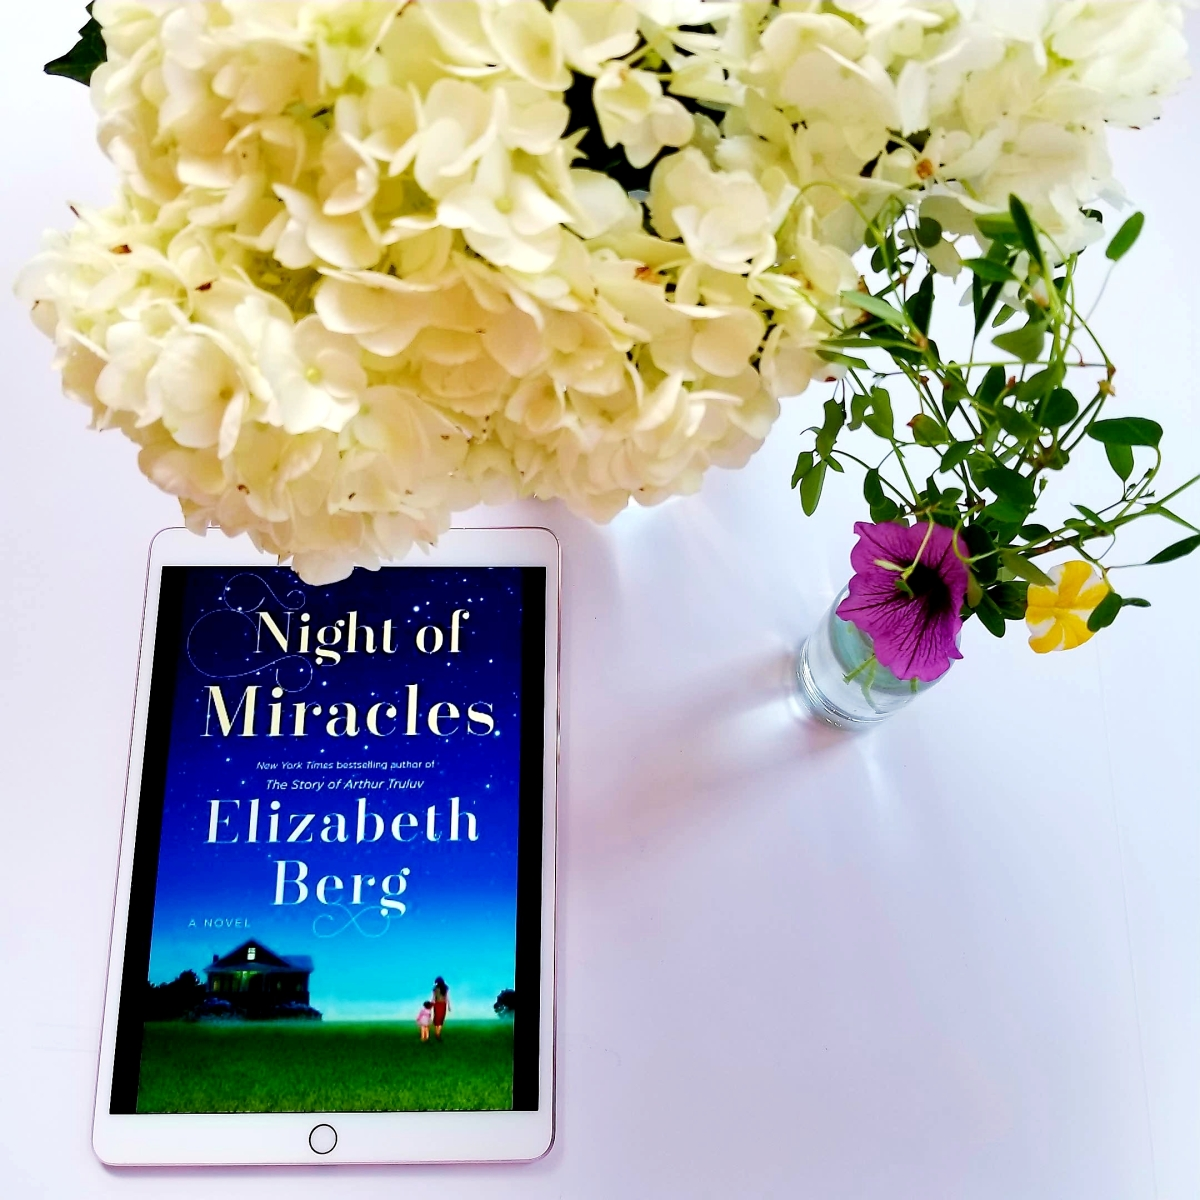 Night of Miracles by Elizabeth Berg #bookreview #tarheelreader #thrnofmir #elizabethberg @randomhouse #nightofmiracles